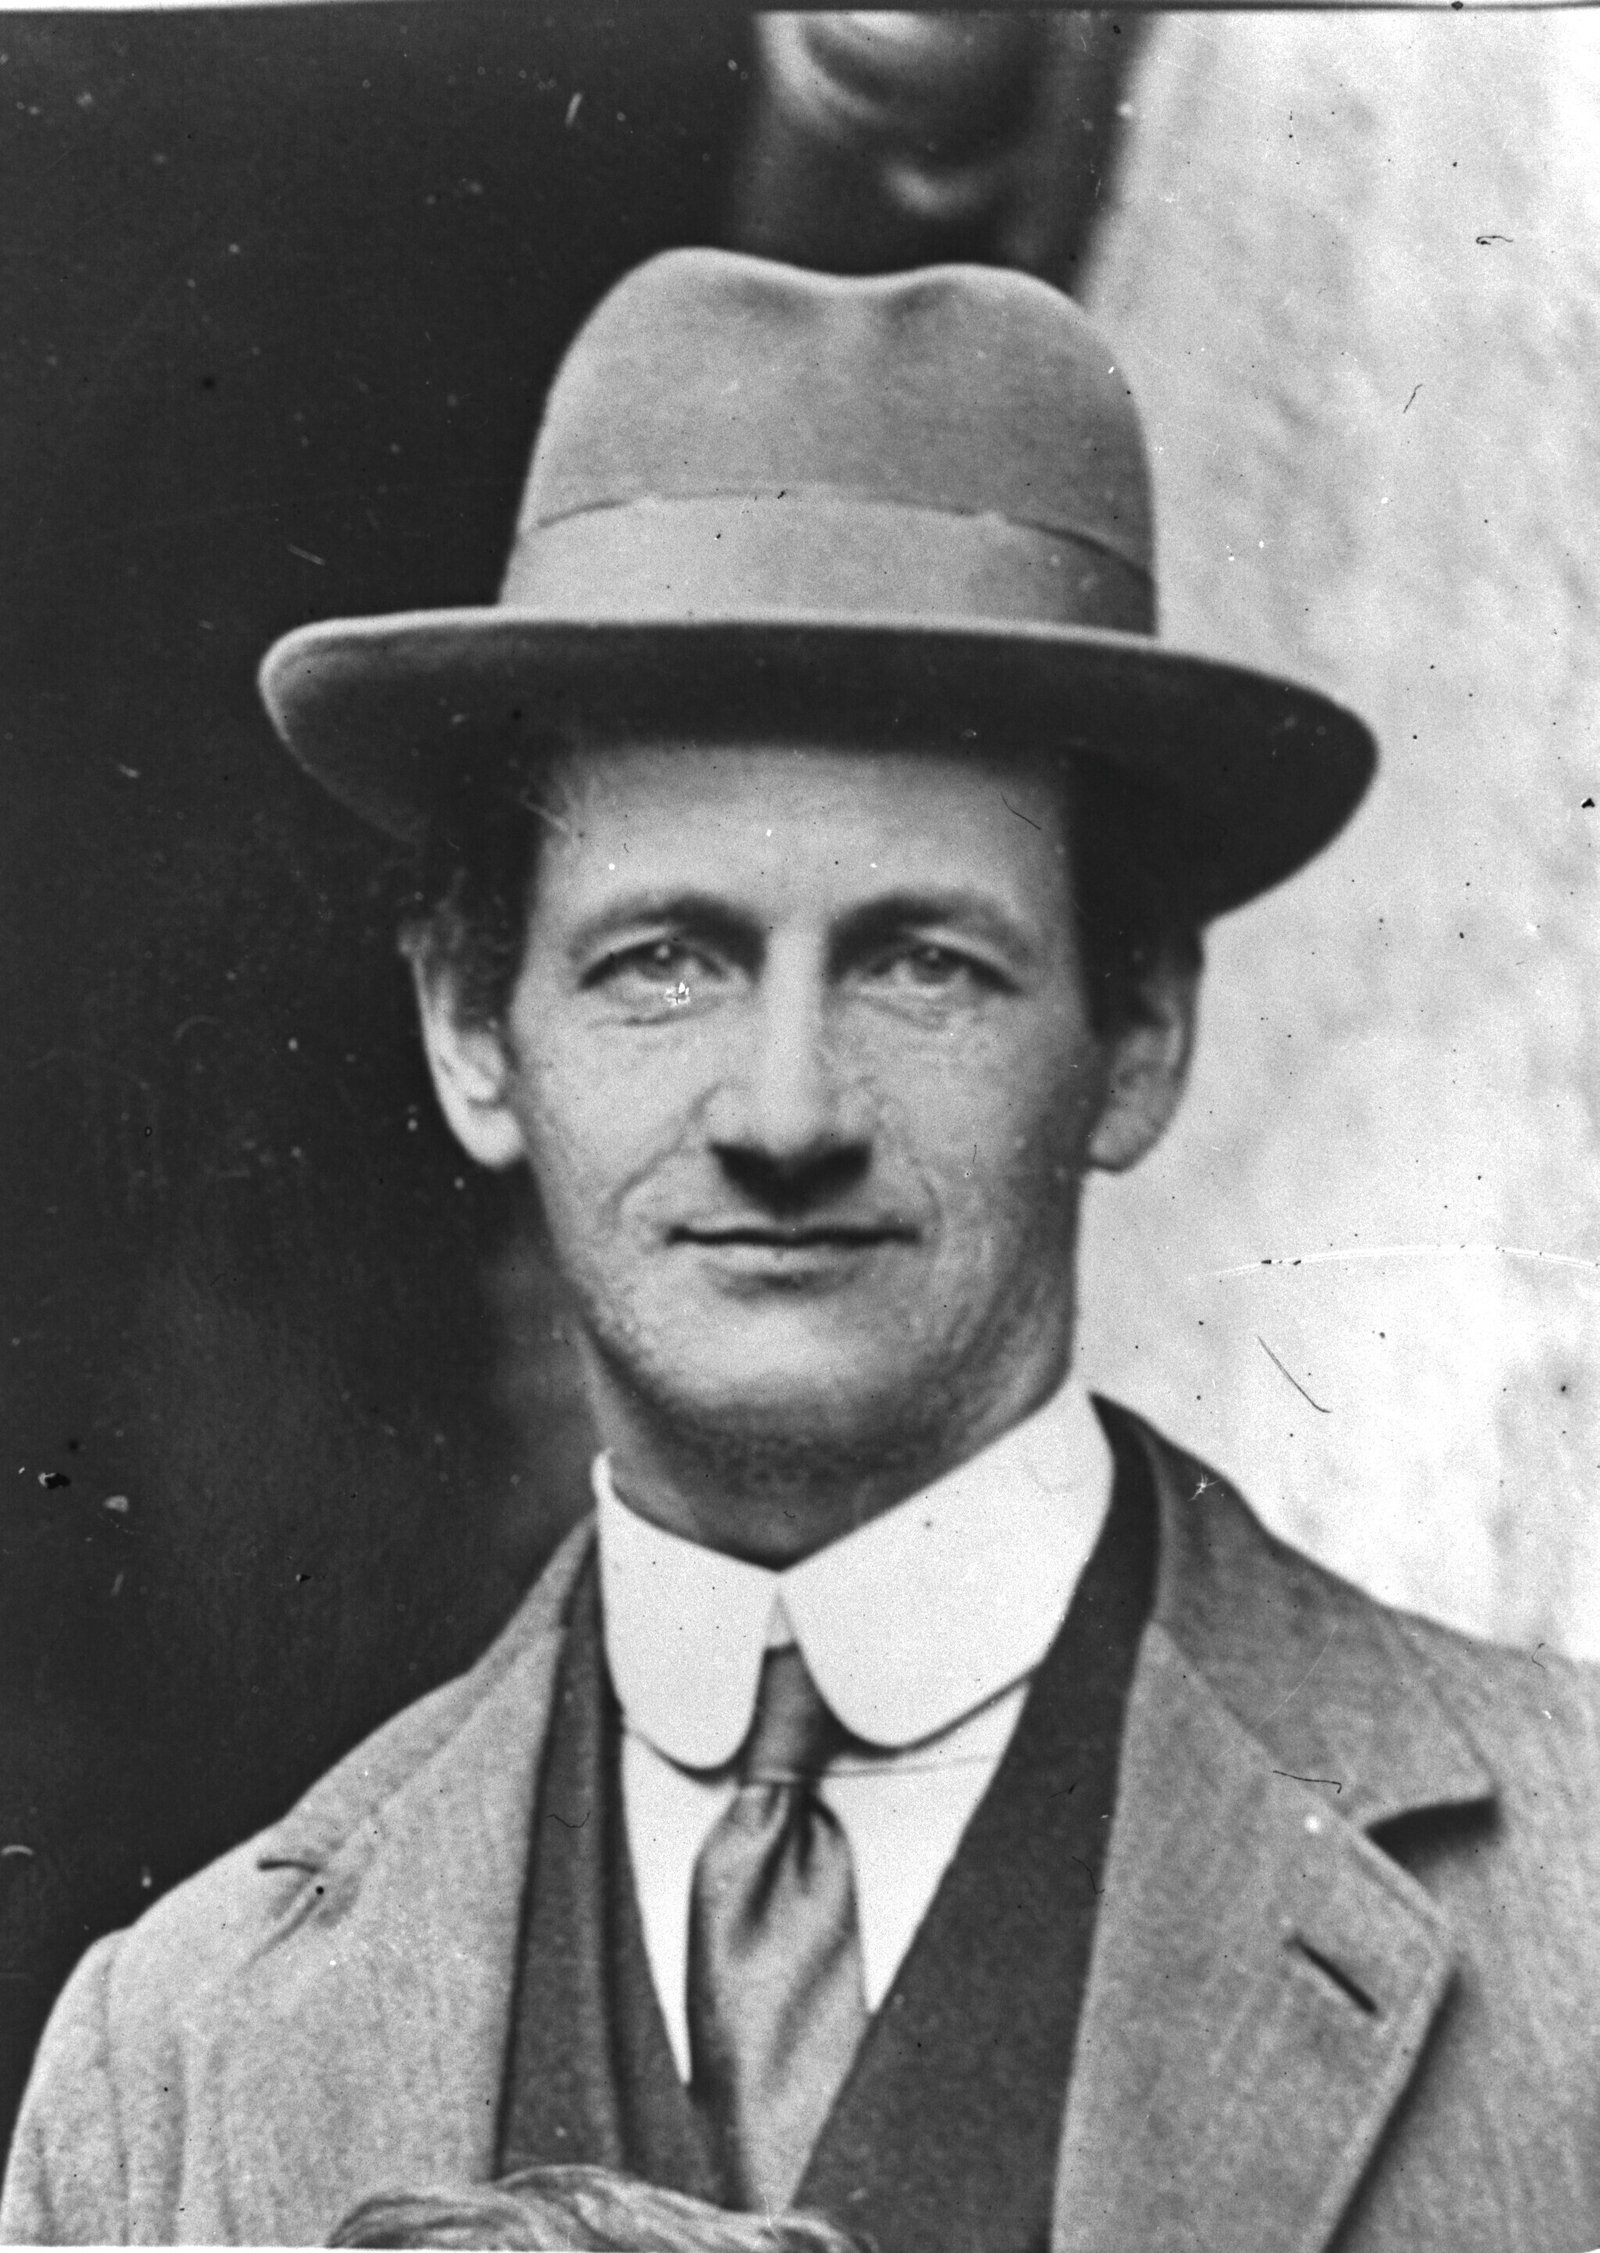 Image - Terence MacSwiney, Lord Mayor of Cork, photographed in 1920, the year of his death